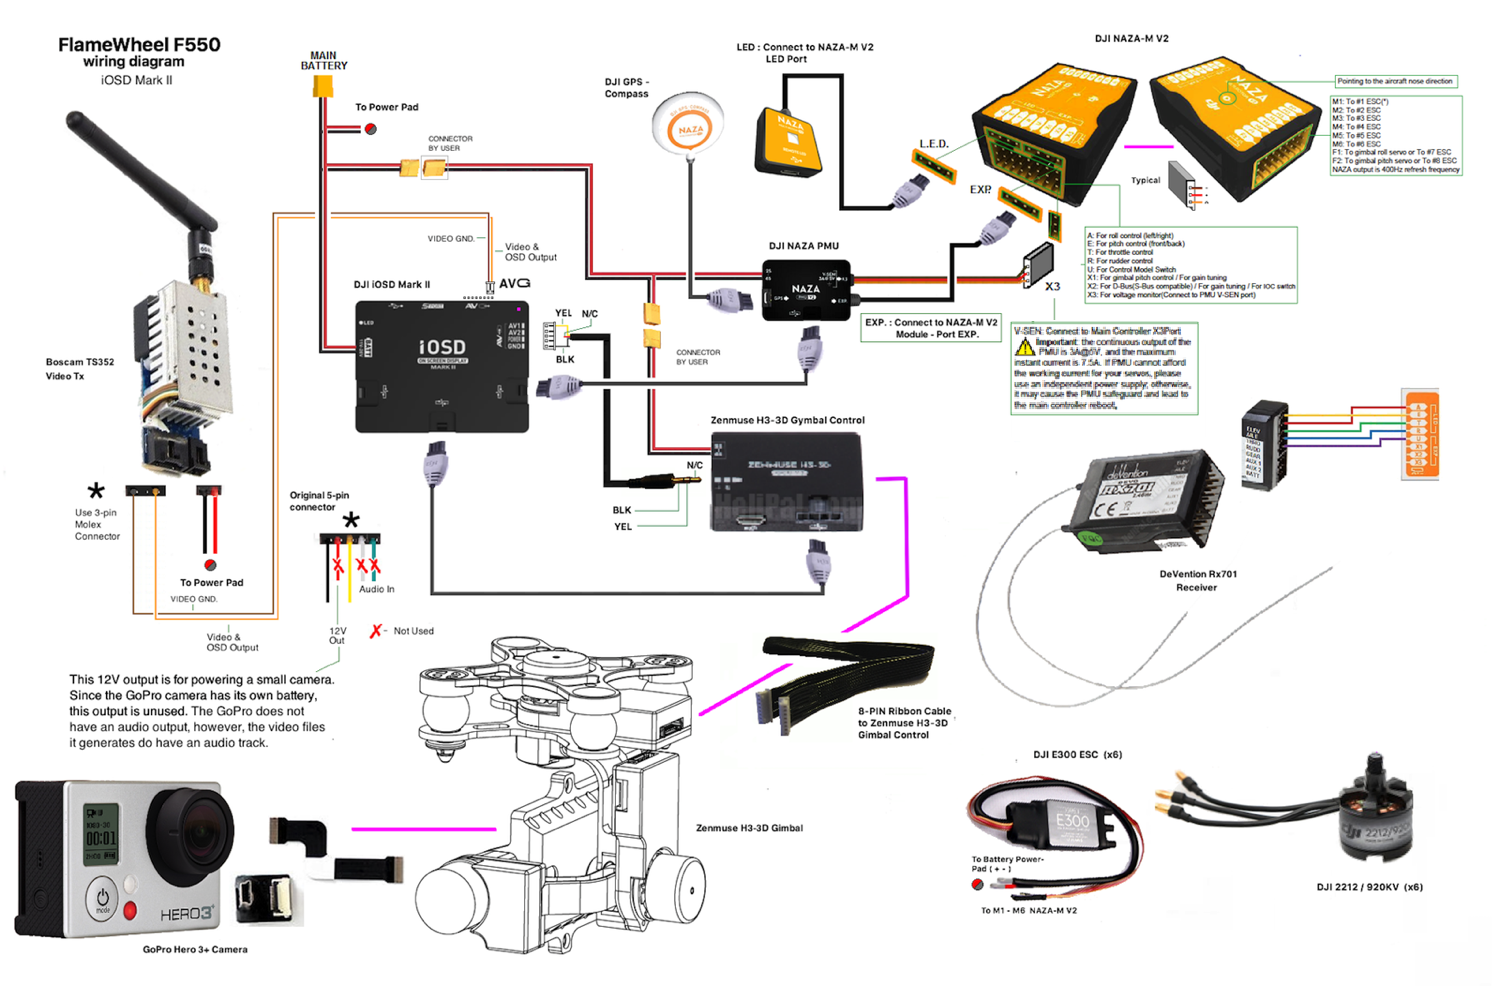 dji wiring diagram wiring library rh 78 akademiaeuropejska eu phantom power wiring diagram phantom 2 wiring diagram